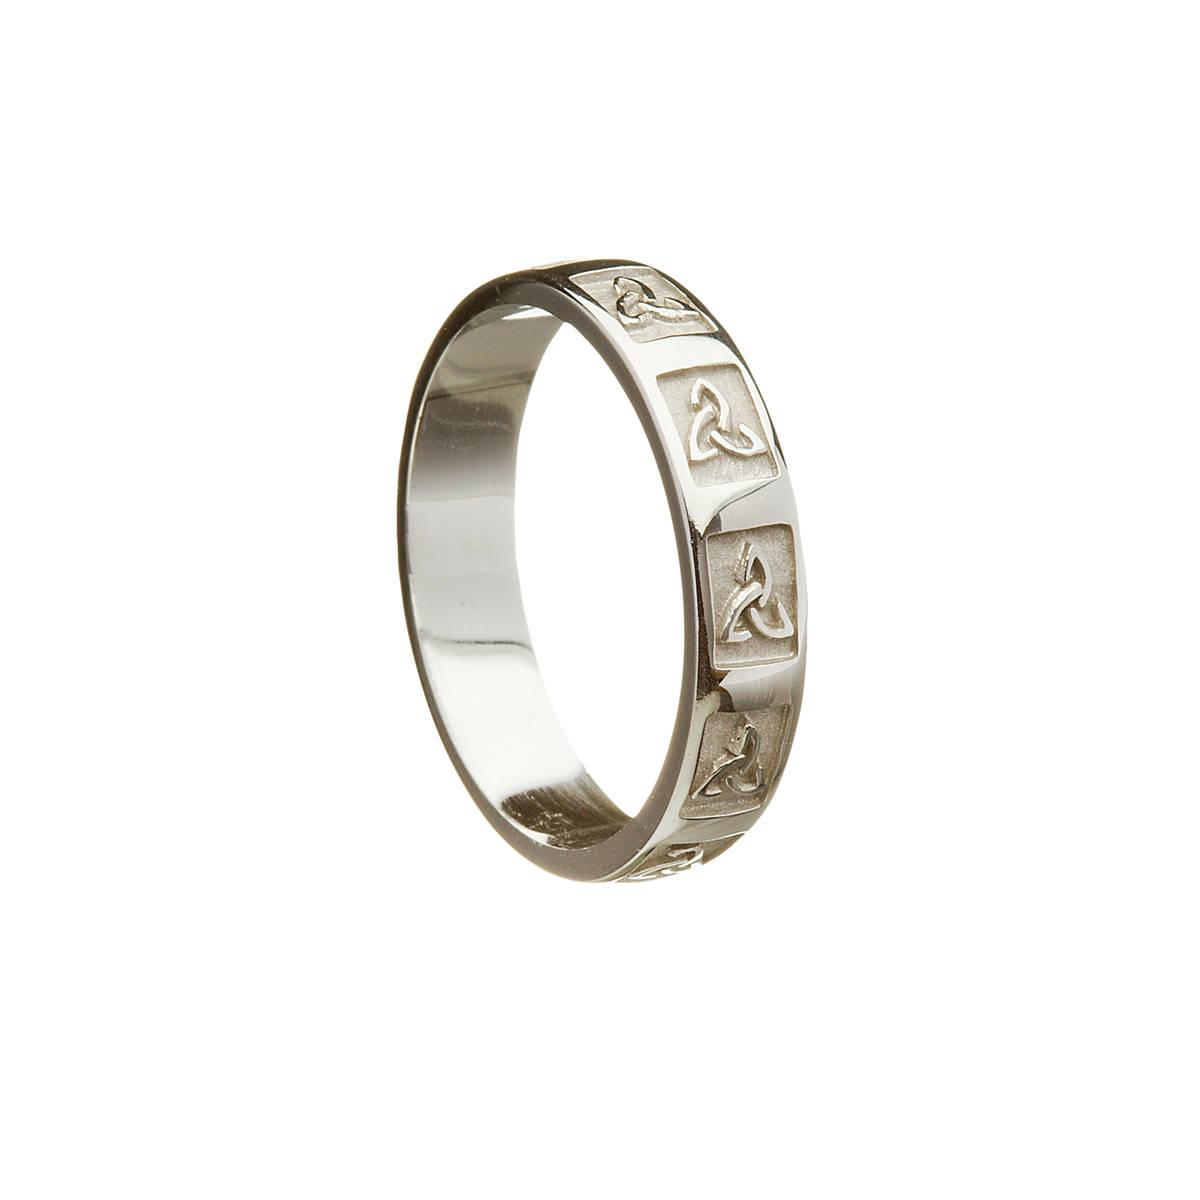 Silver man's raised trinity knot design in frames 5.3mm wide approx. ring.Amust -have man's ring.